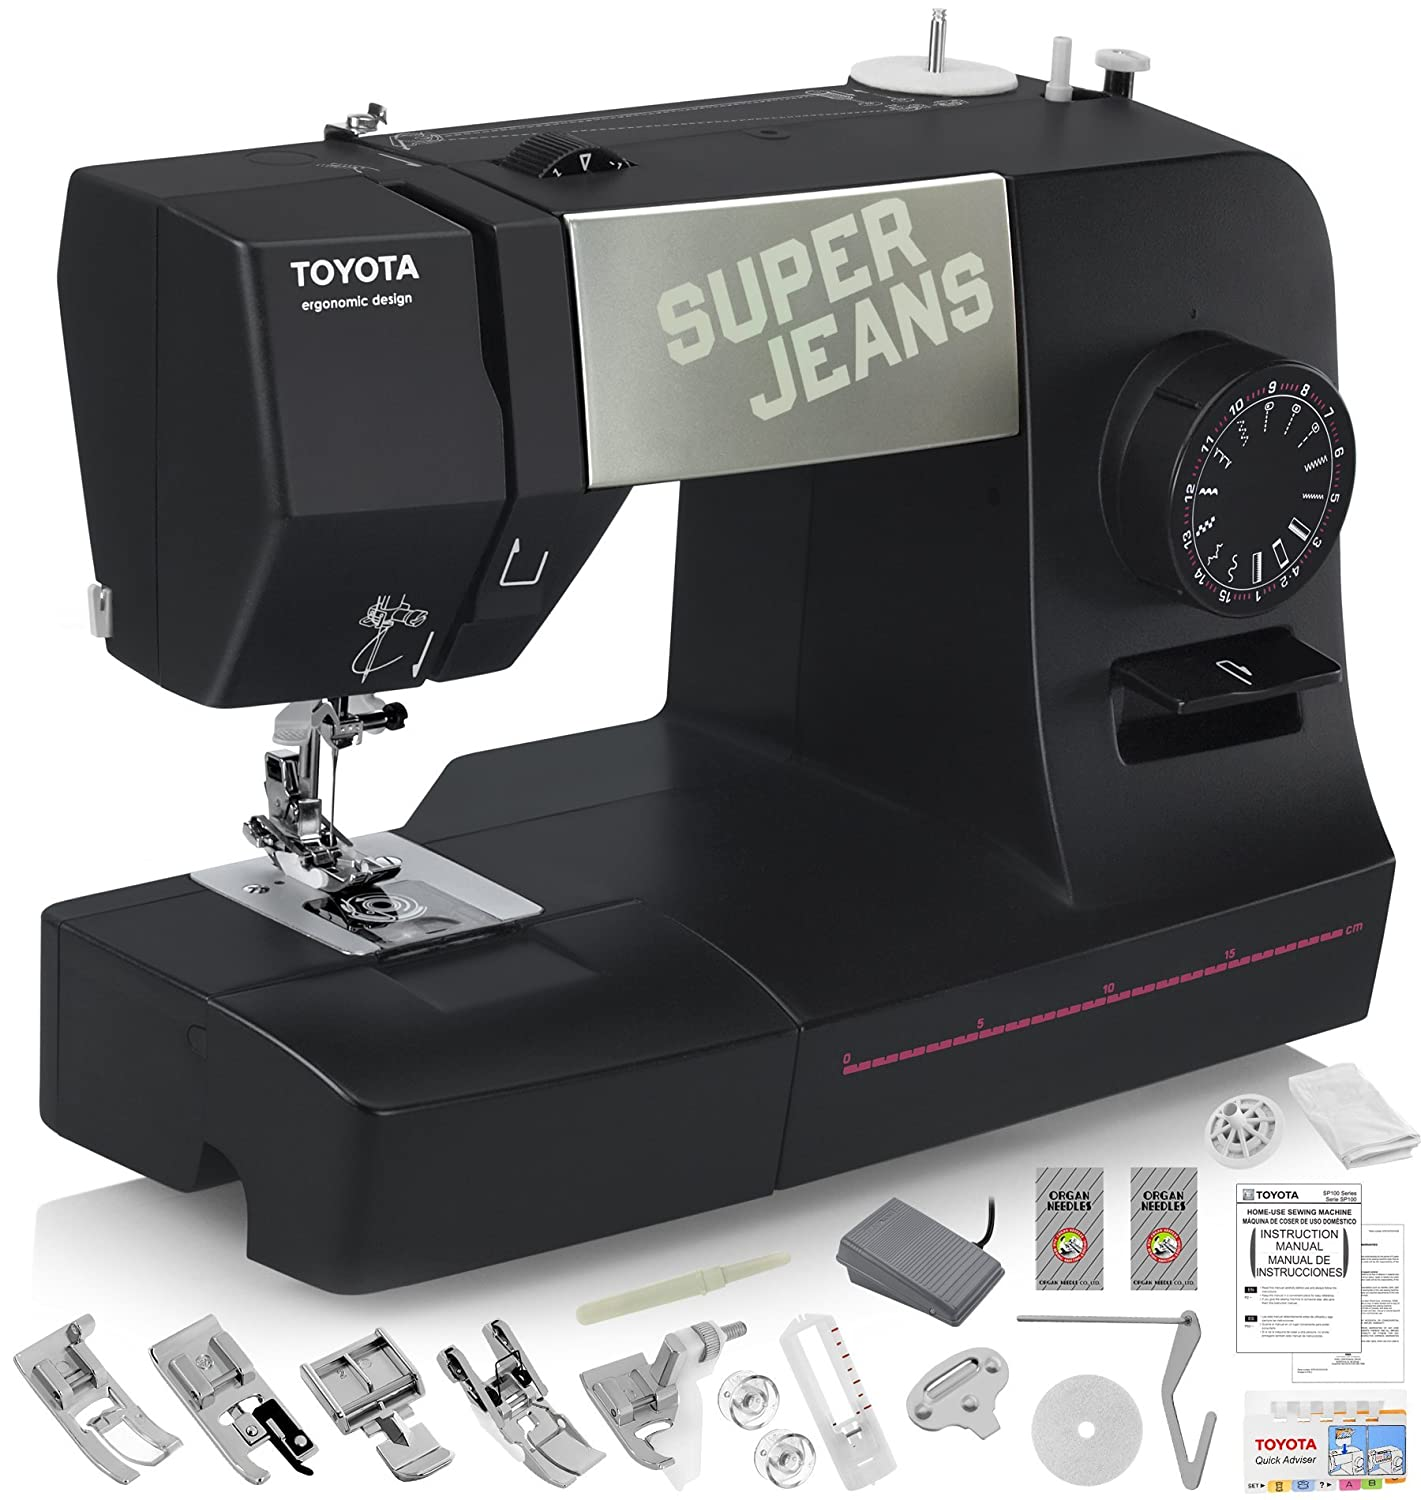 TOYOTA Super Jeans J15 Sewing Machine (Glides Over 12 Layers of Denim) w/ Gliding Foot, Blind Hem Foot, Zipper Foot, Overcast Foot, Needles and More!